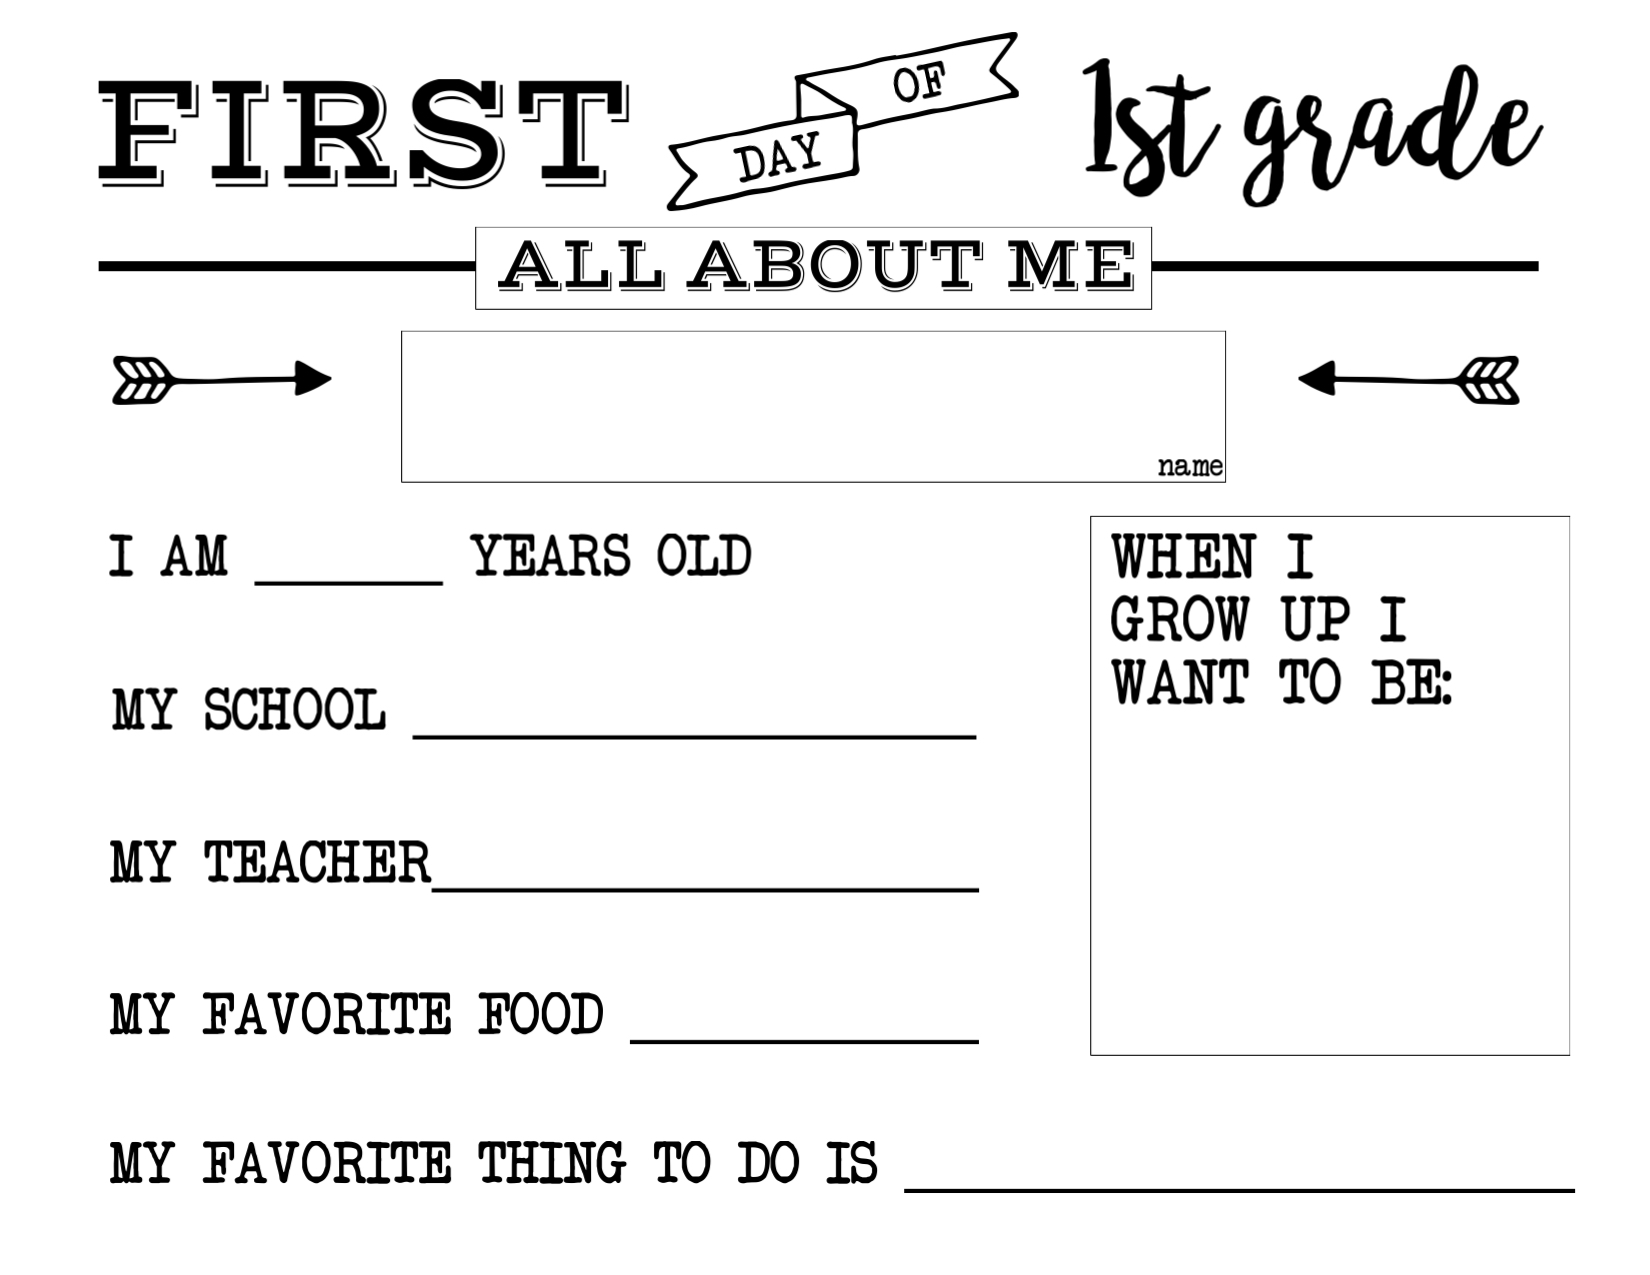 hight resolution of First Day of School All About Me Sign   Paper Trail Design